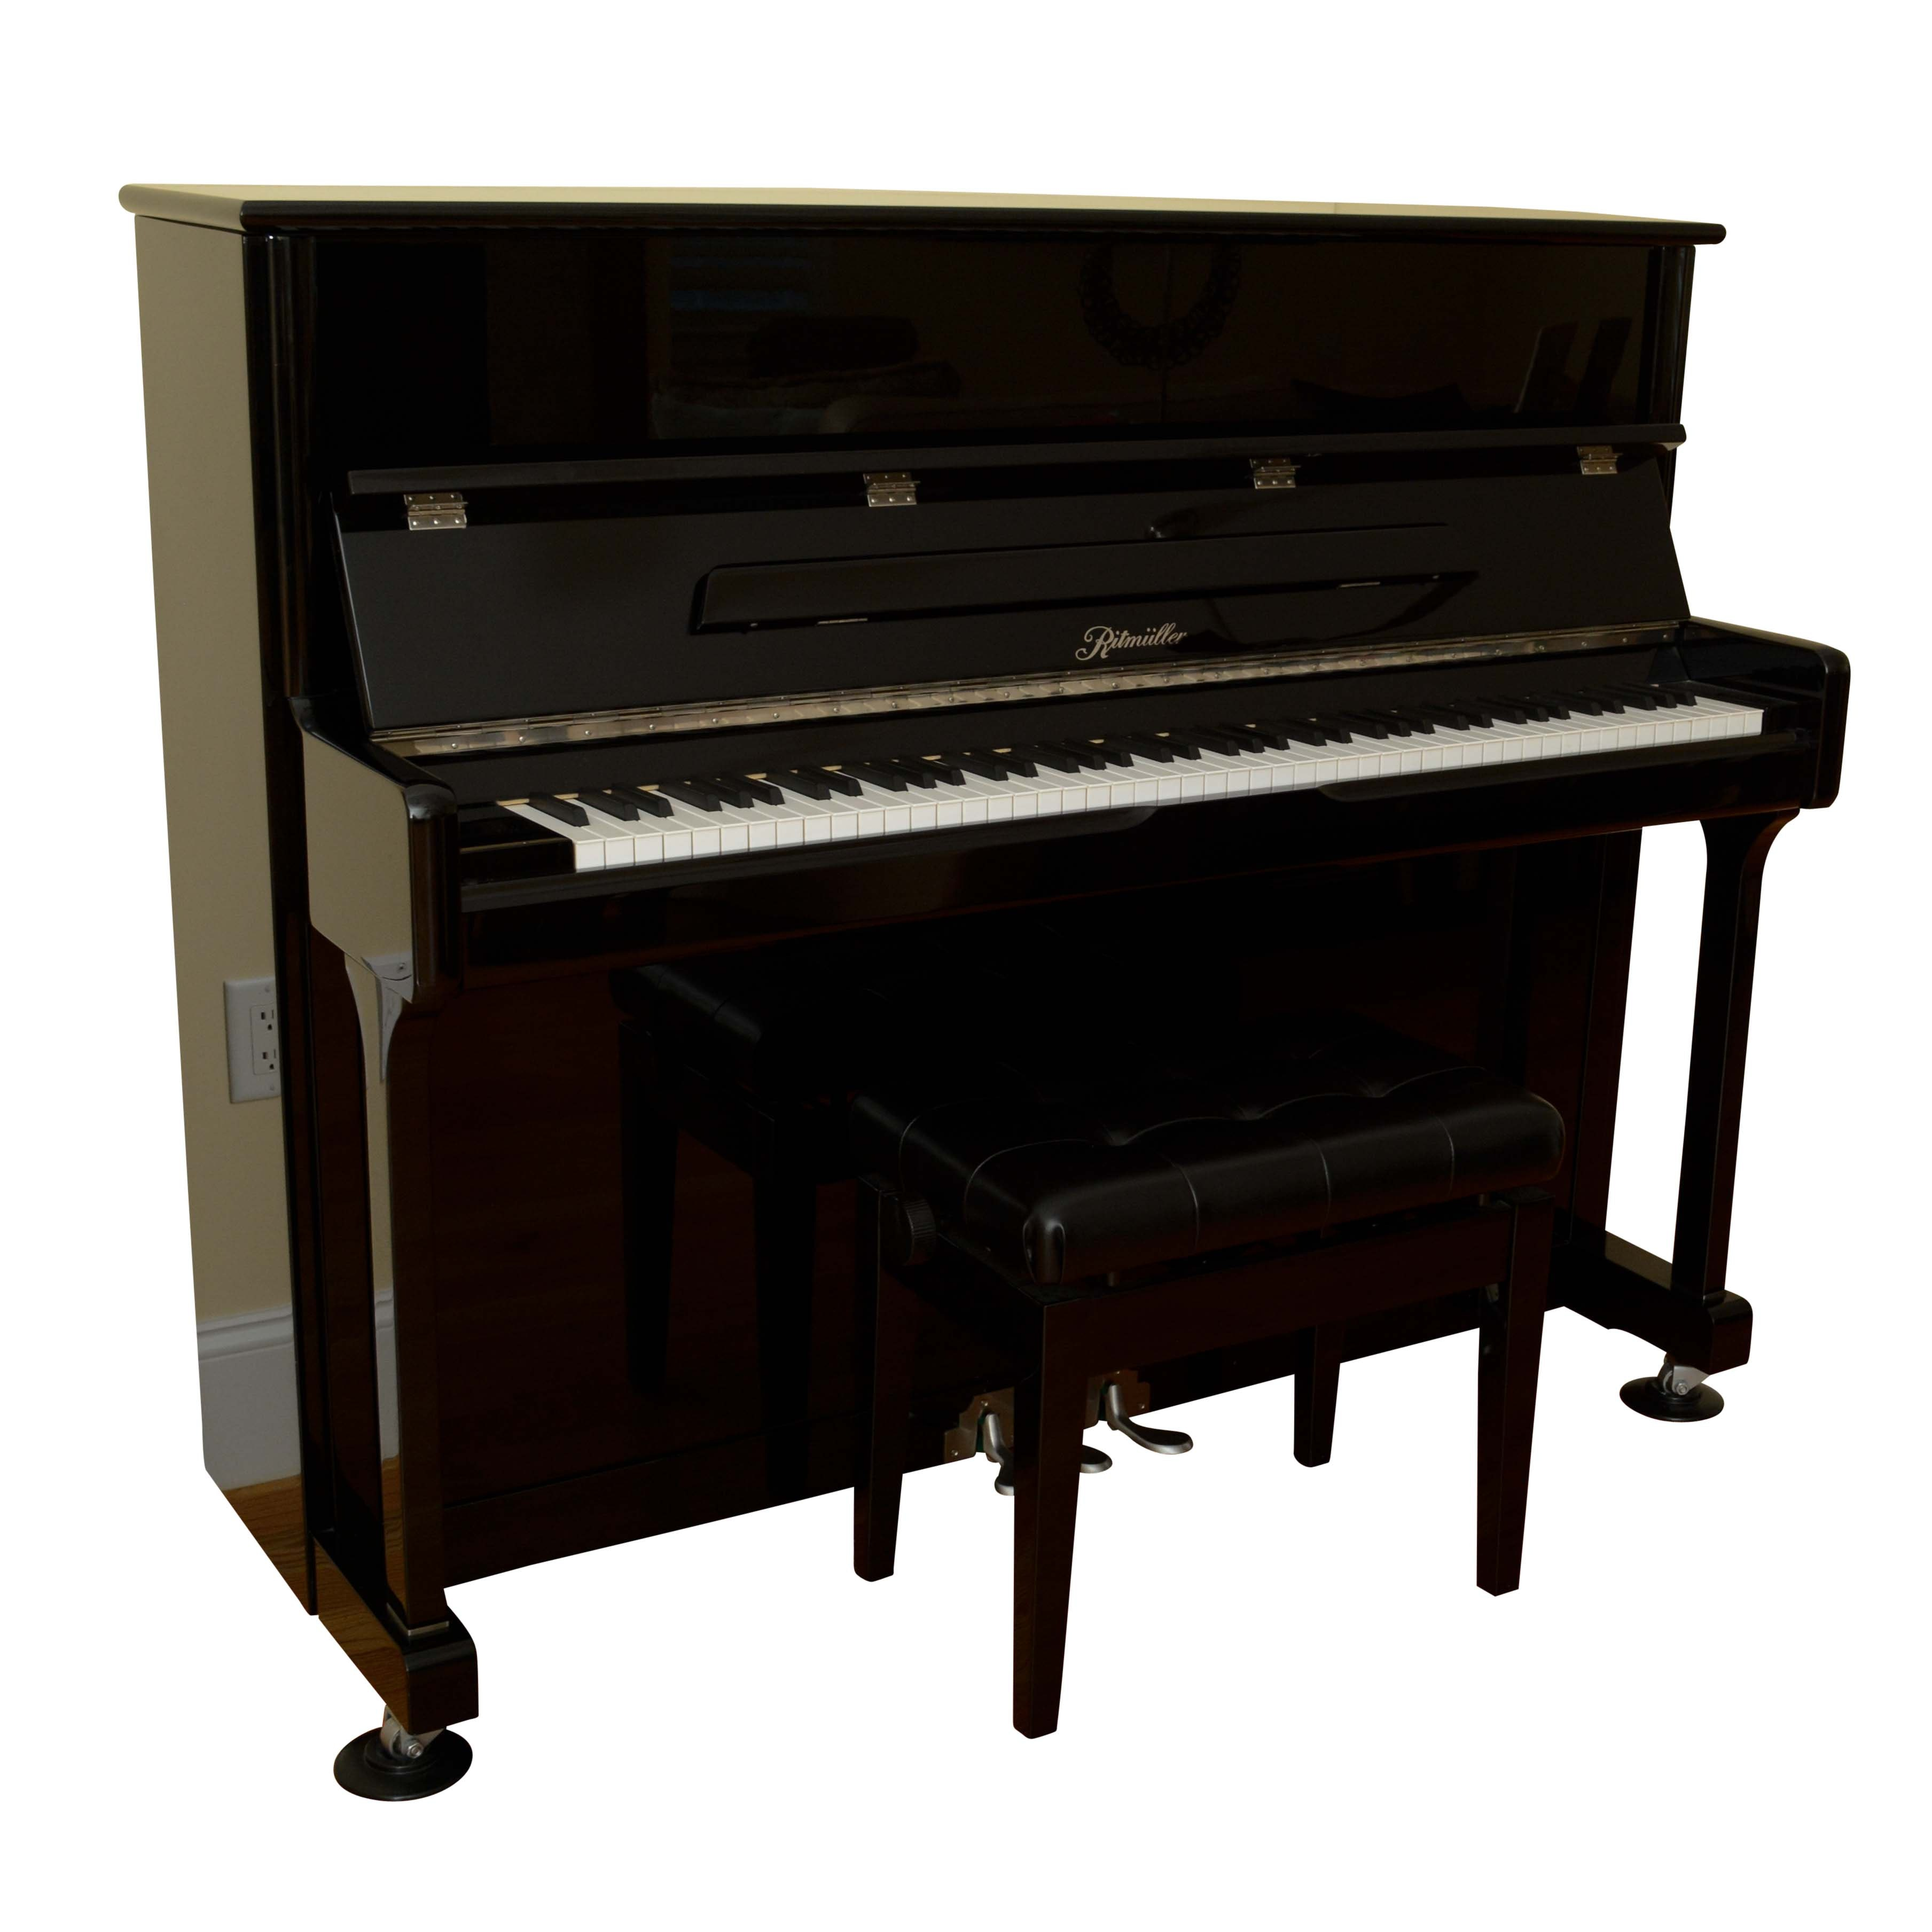 Ritmüller Studio Upright Piano with Adjustable Bench